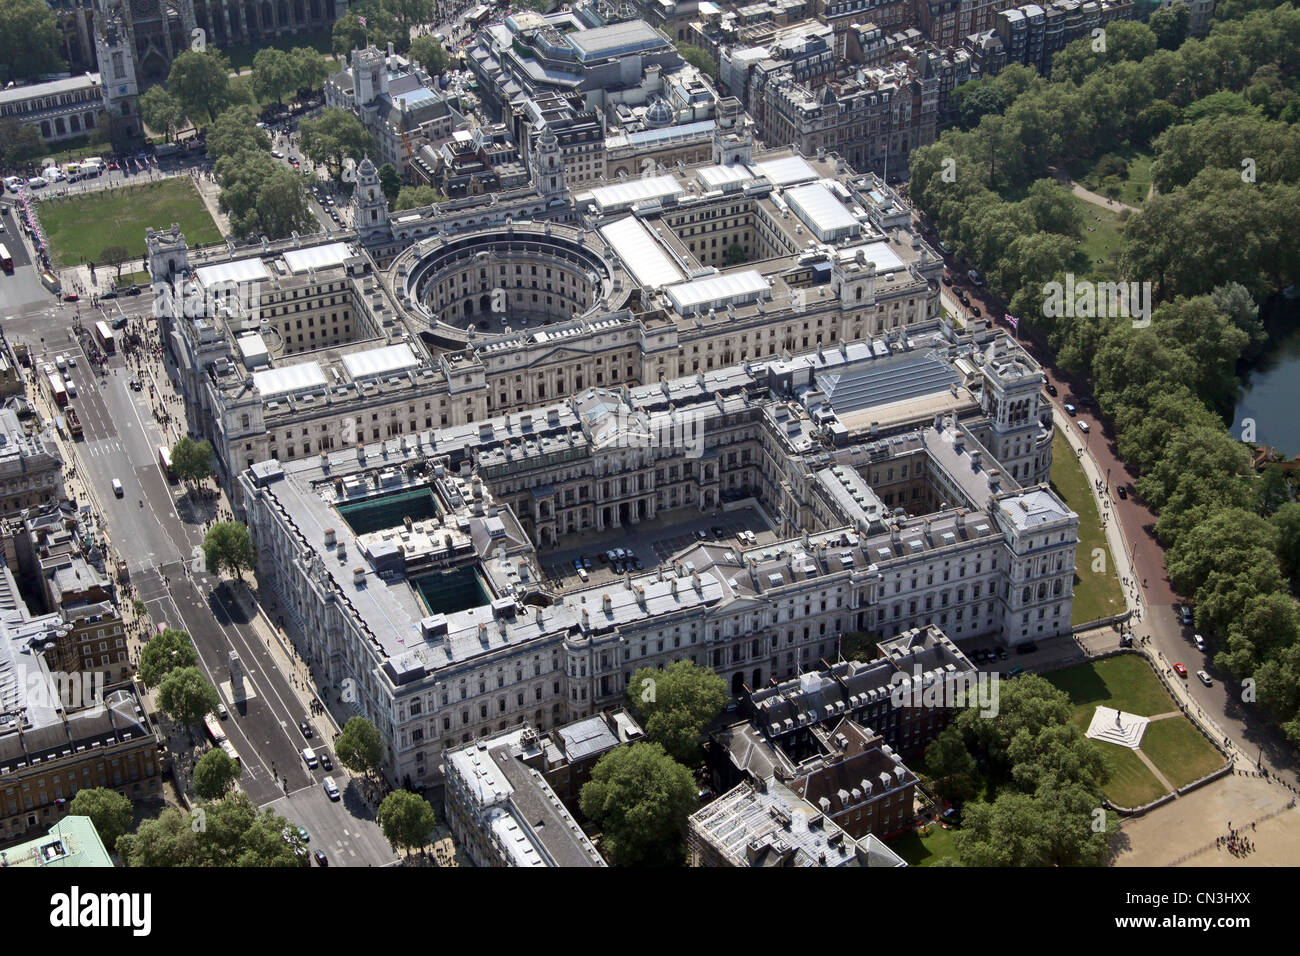 Aerial view of Treasury Buildings, The FCO, Government Offices, Cabinet Office, Whitehall - Stock Image